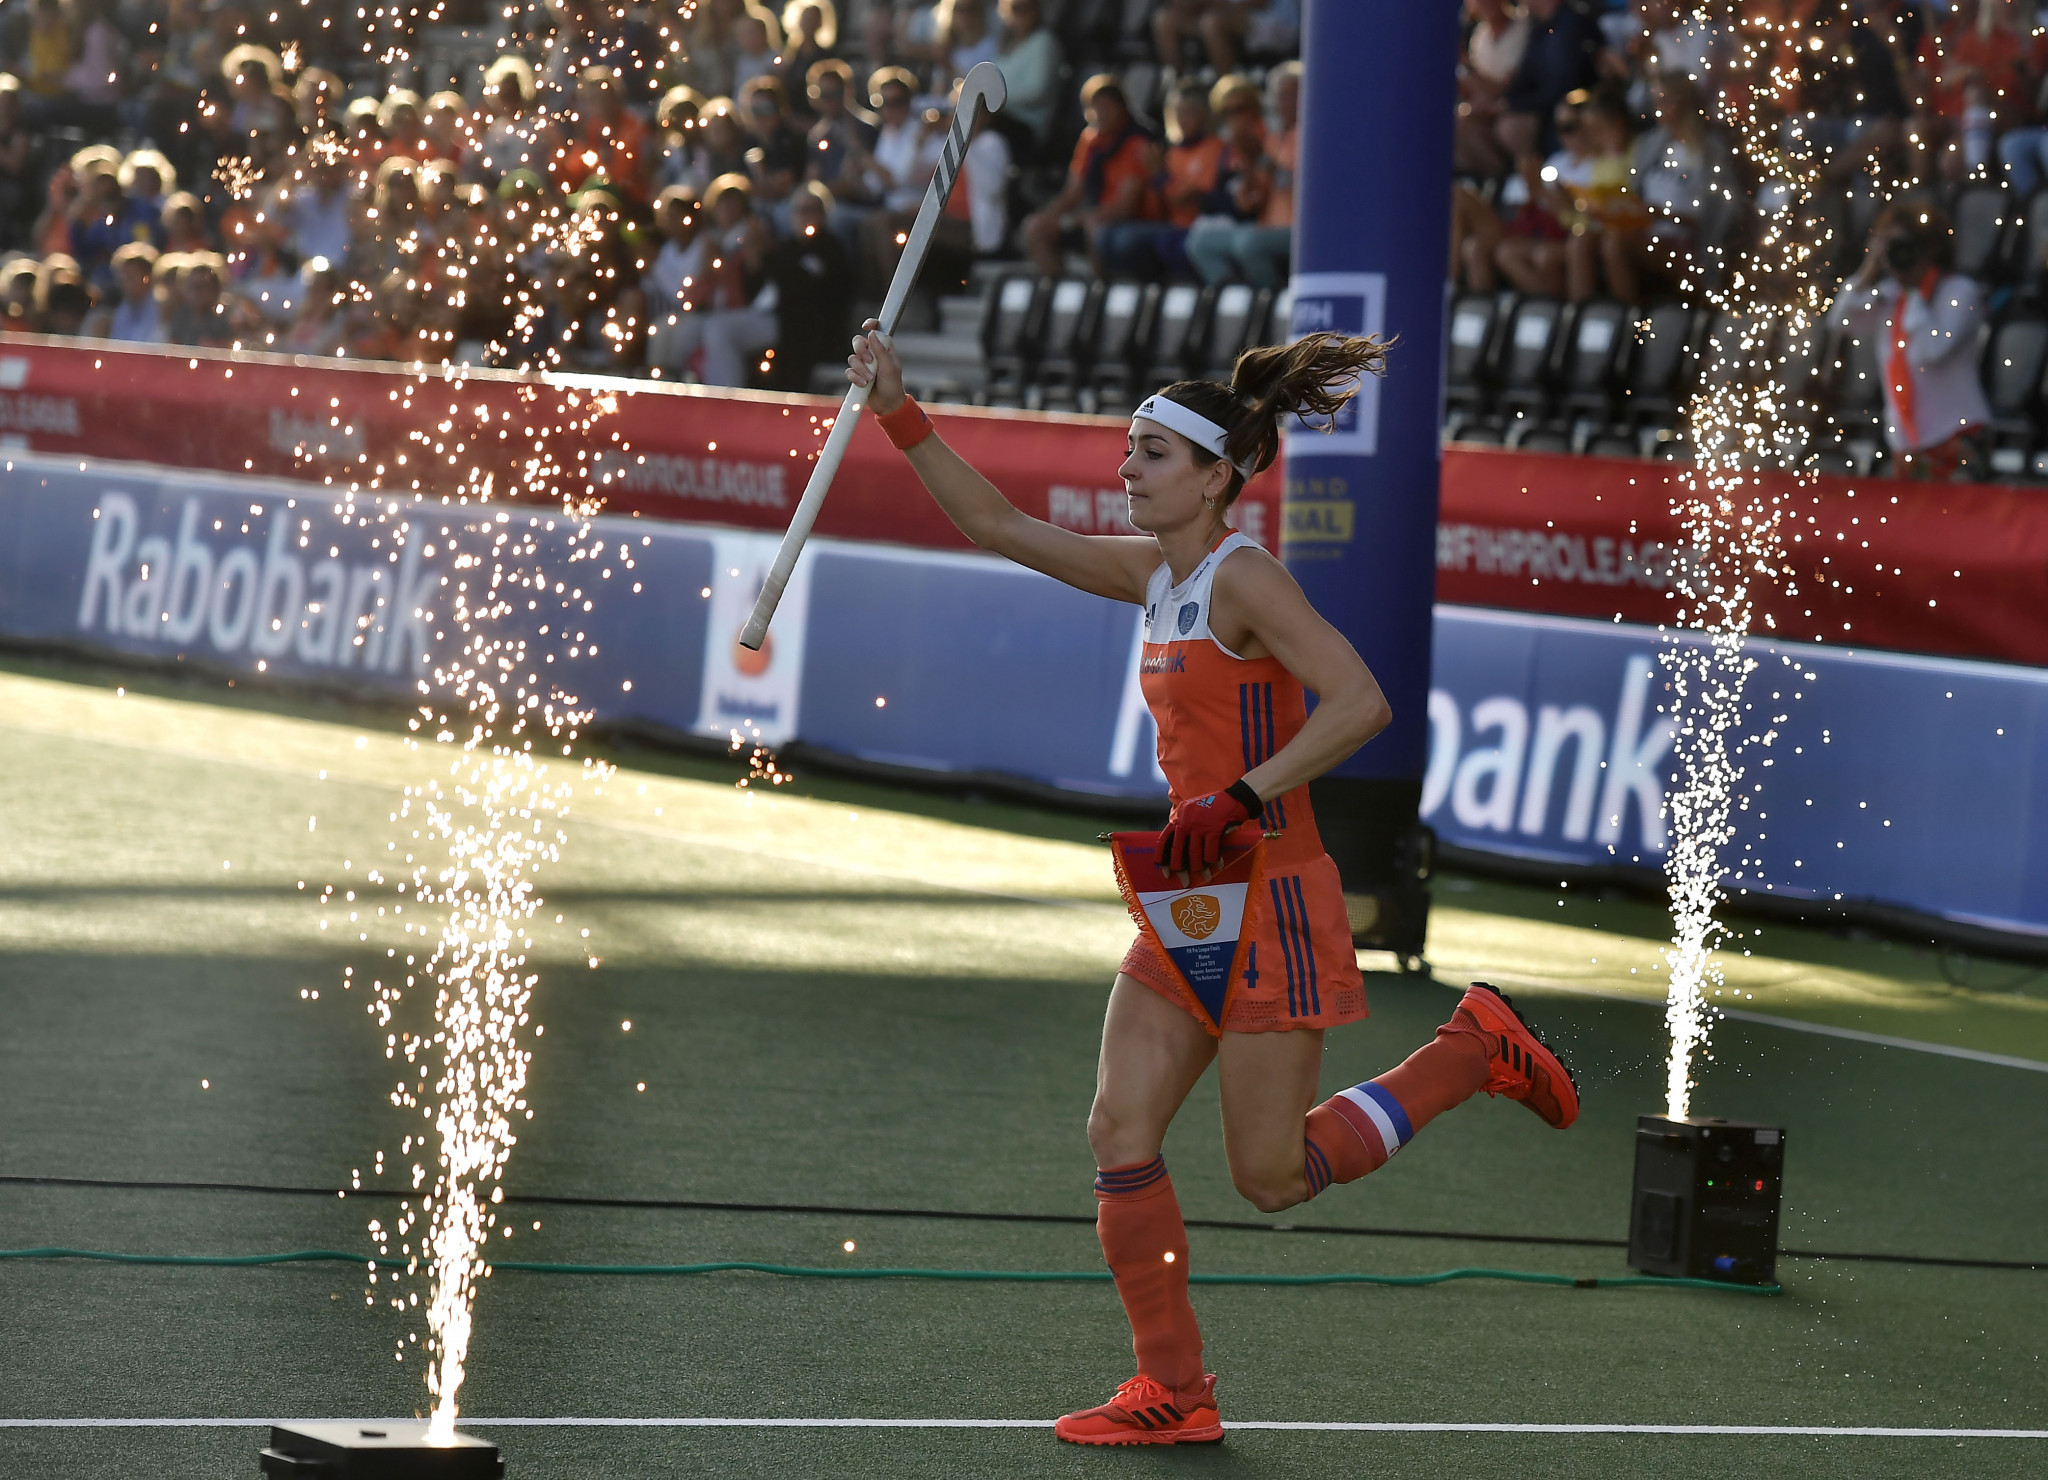 De Goede crowned FIH Women's Player of the Year for second consecutive year